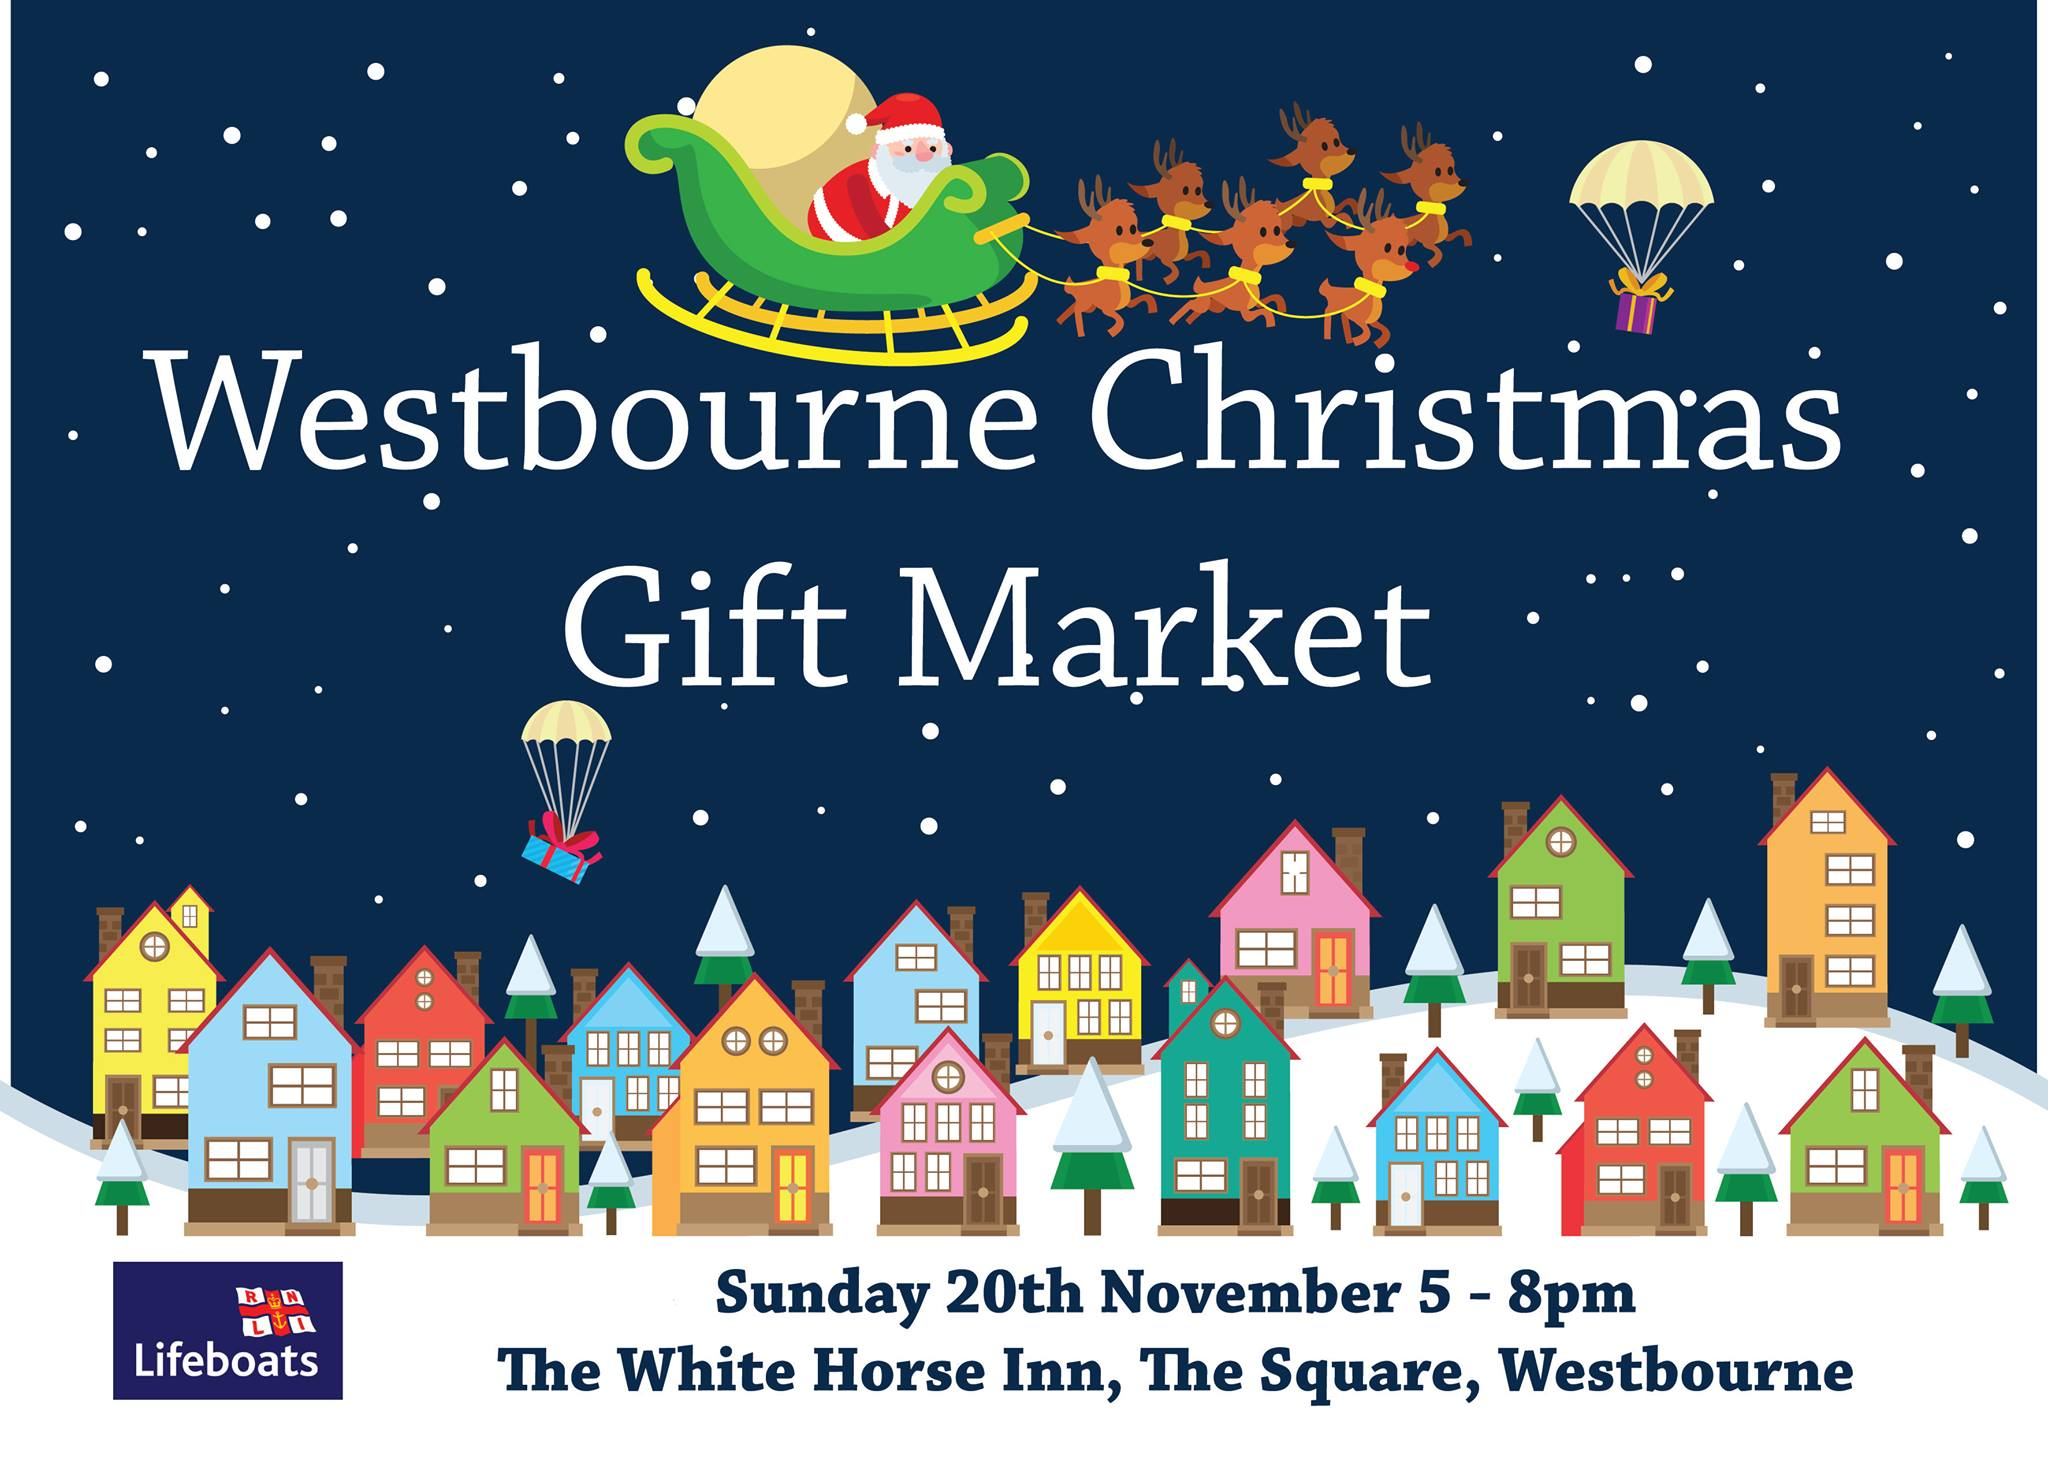 Westbourne Christmas Gift Market Sunday 20 November; Taste and discover great wines; English Wine West Susses Gift Box